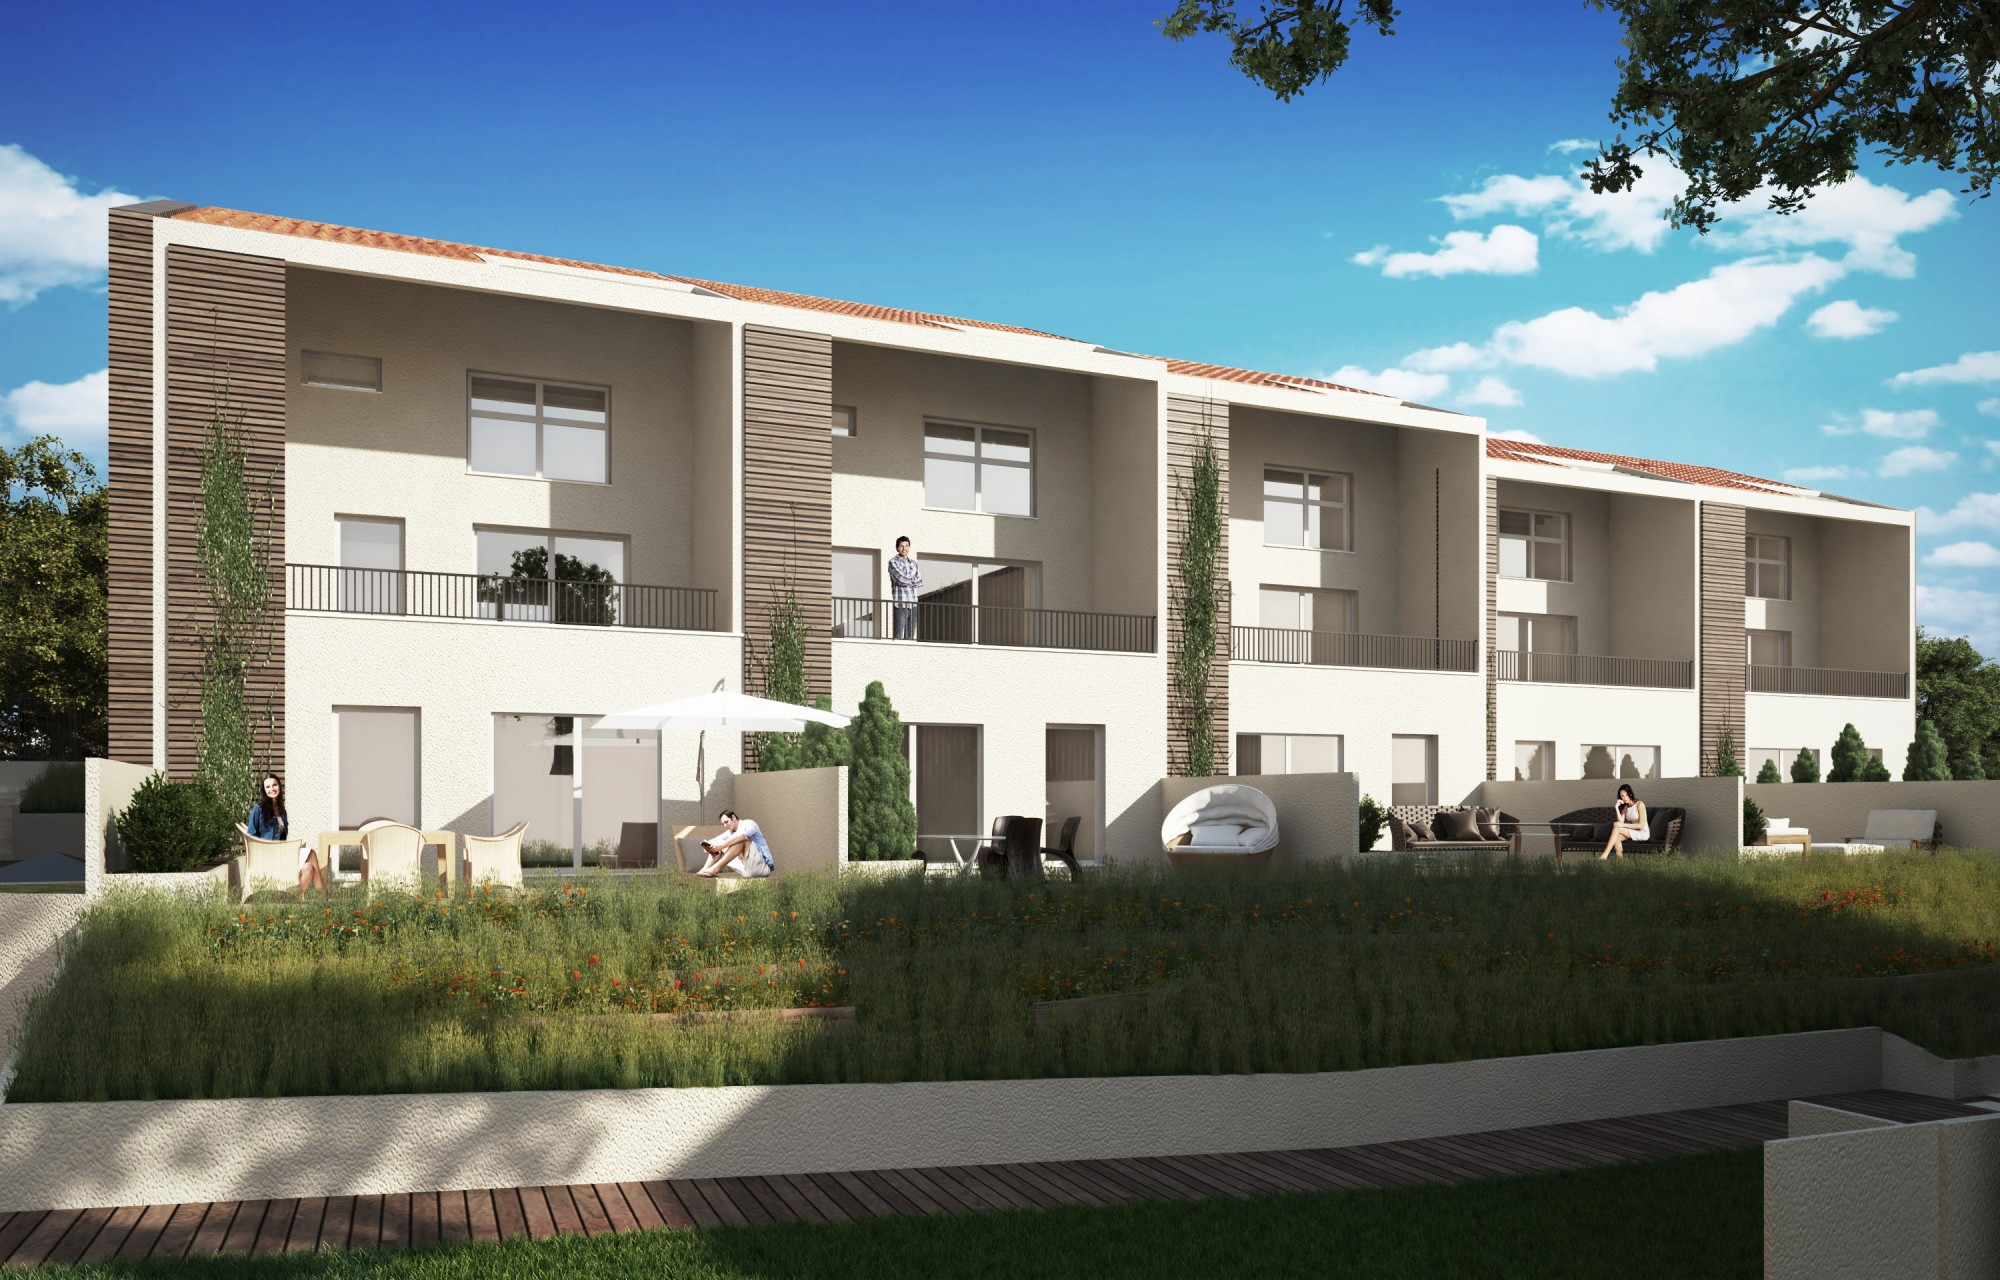 Immobilier neuf programme neuf achat logement neuf html for Achat logement neuf